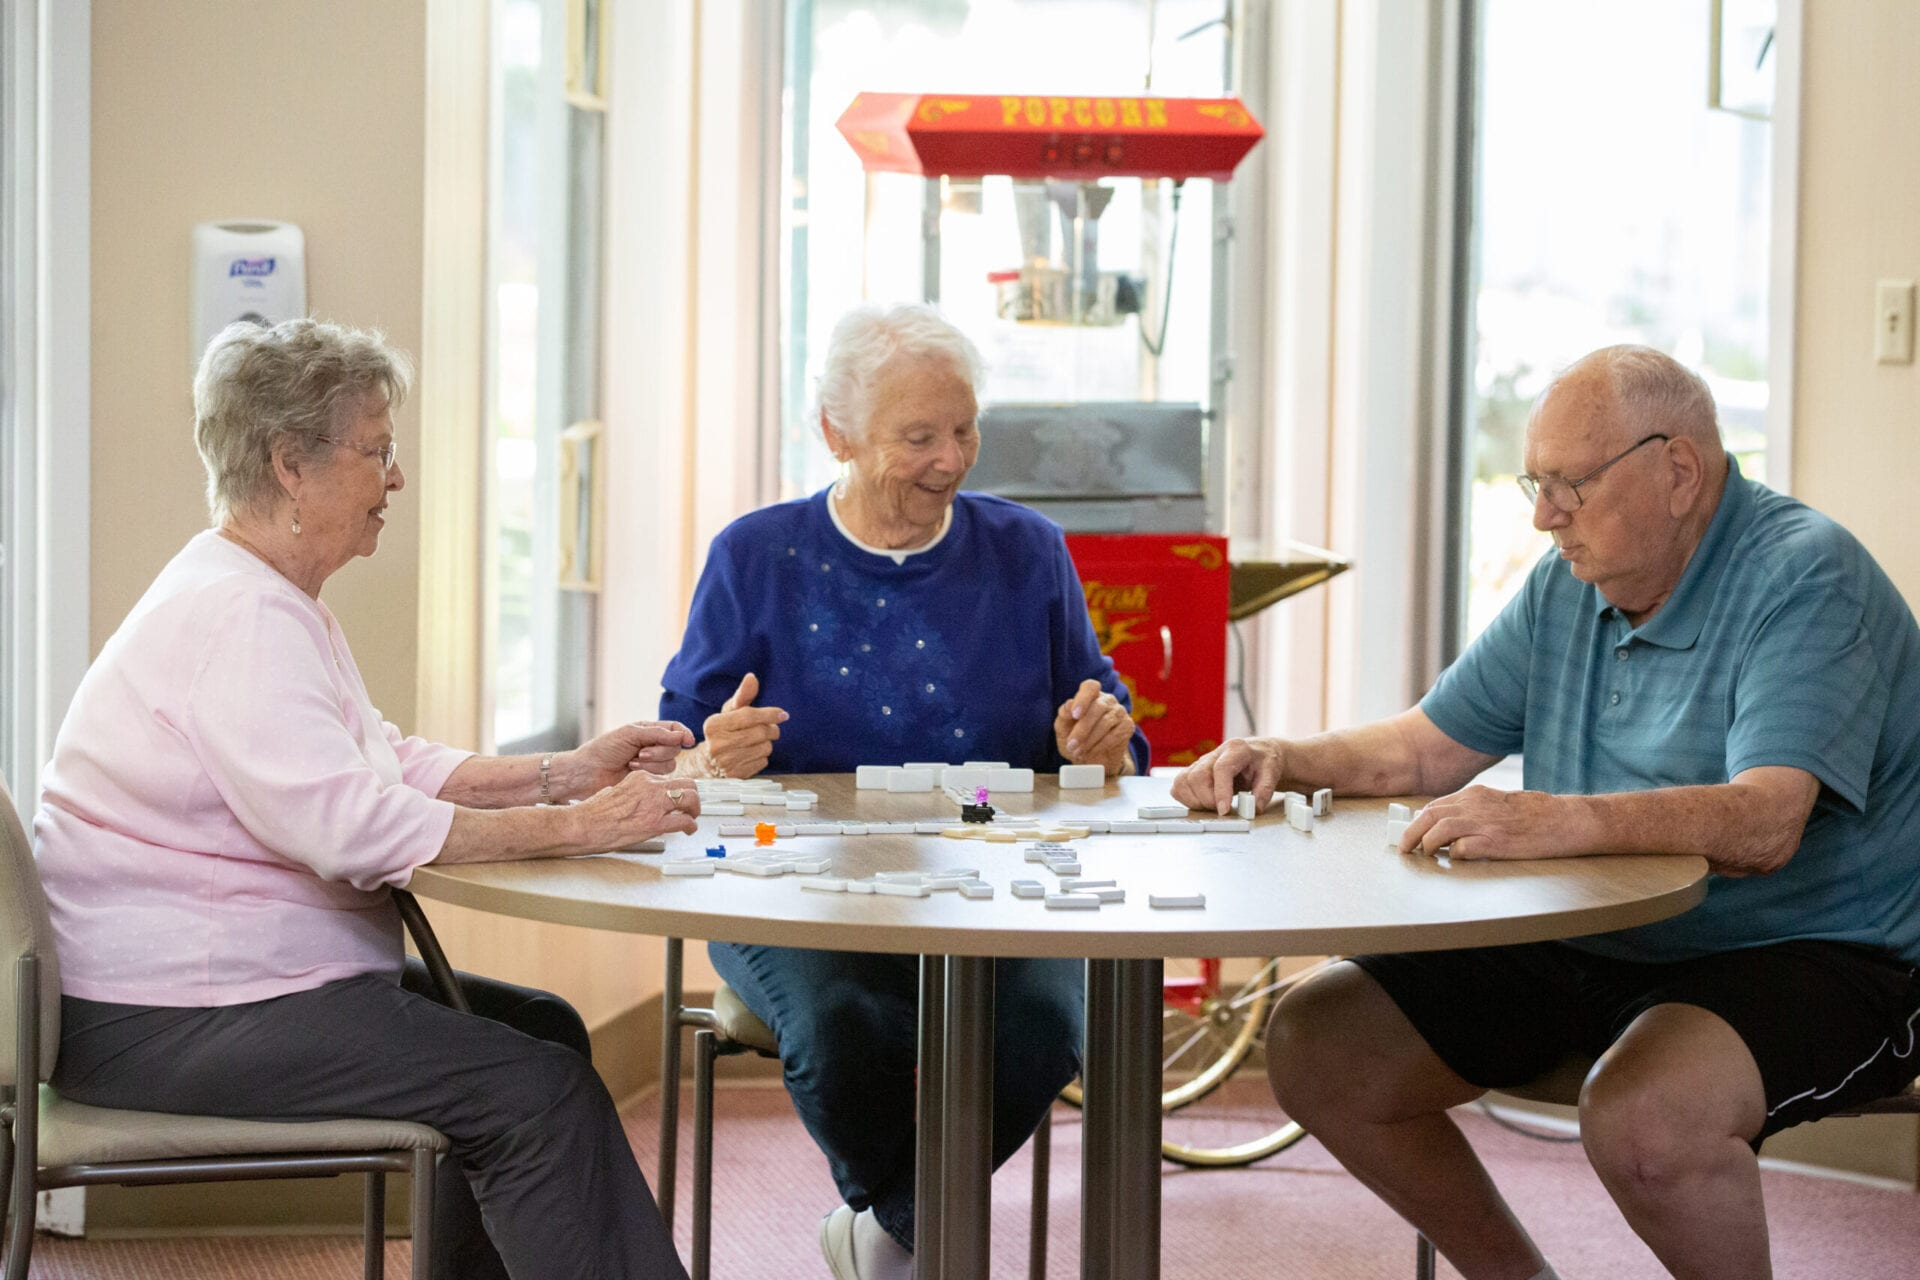 Residents playing dominoes in the game room